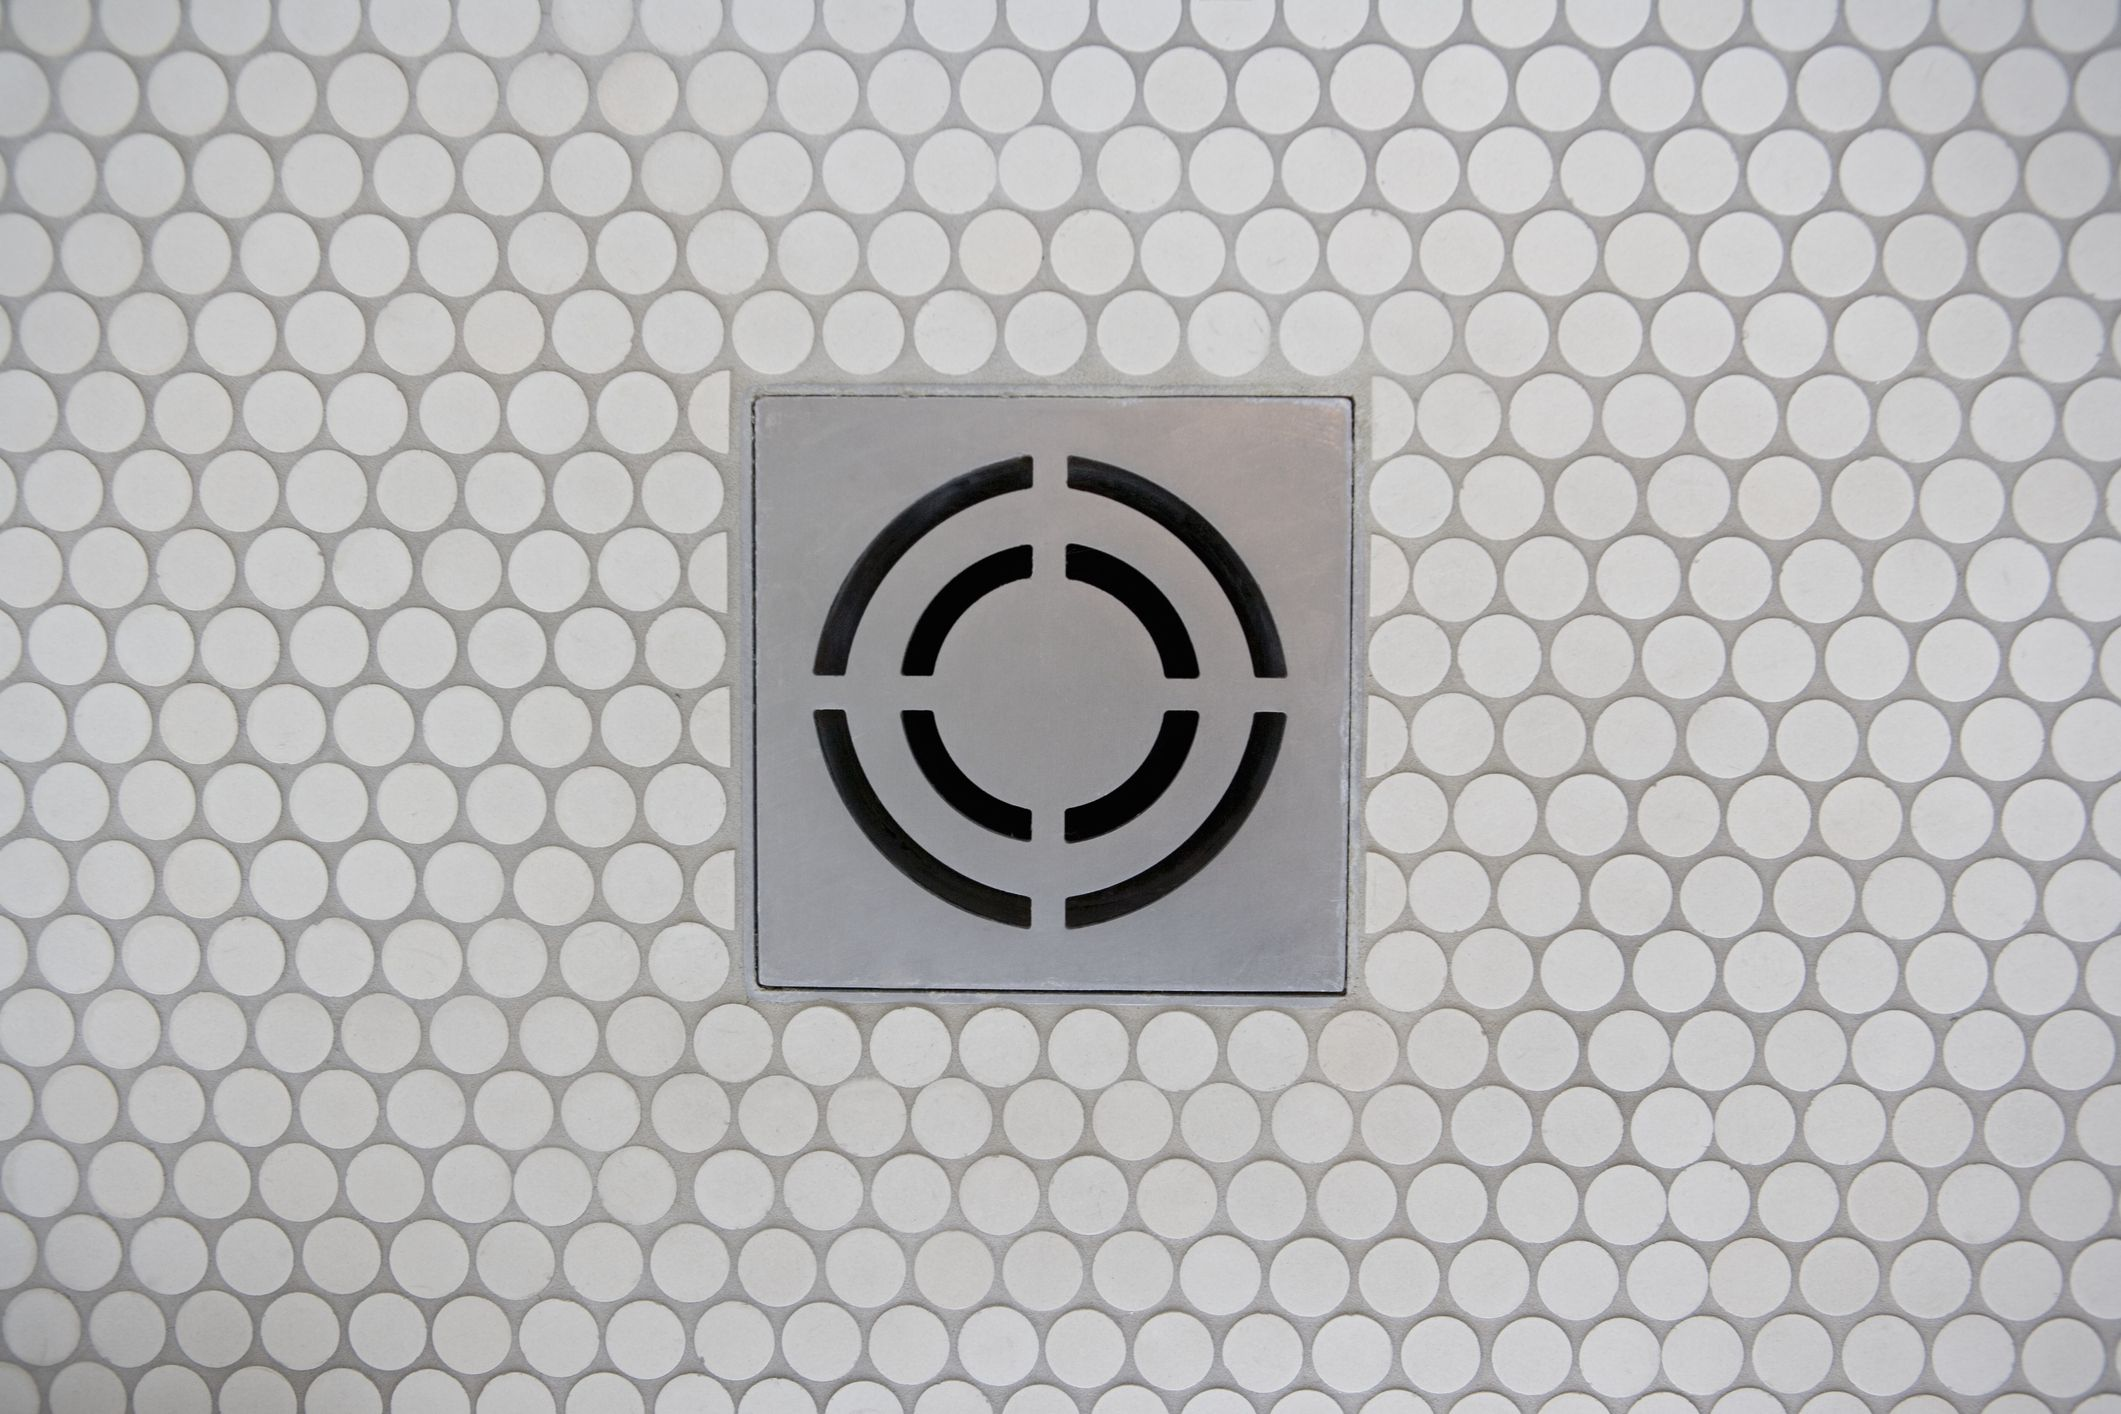 Install A Floor Drain For The Laundry Room